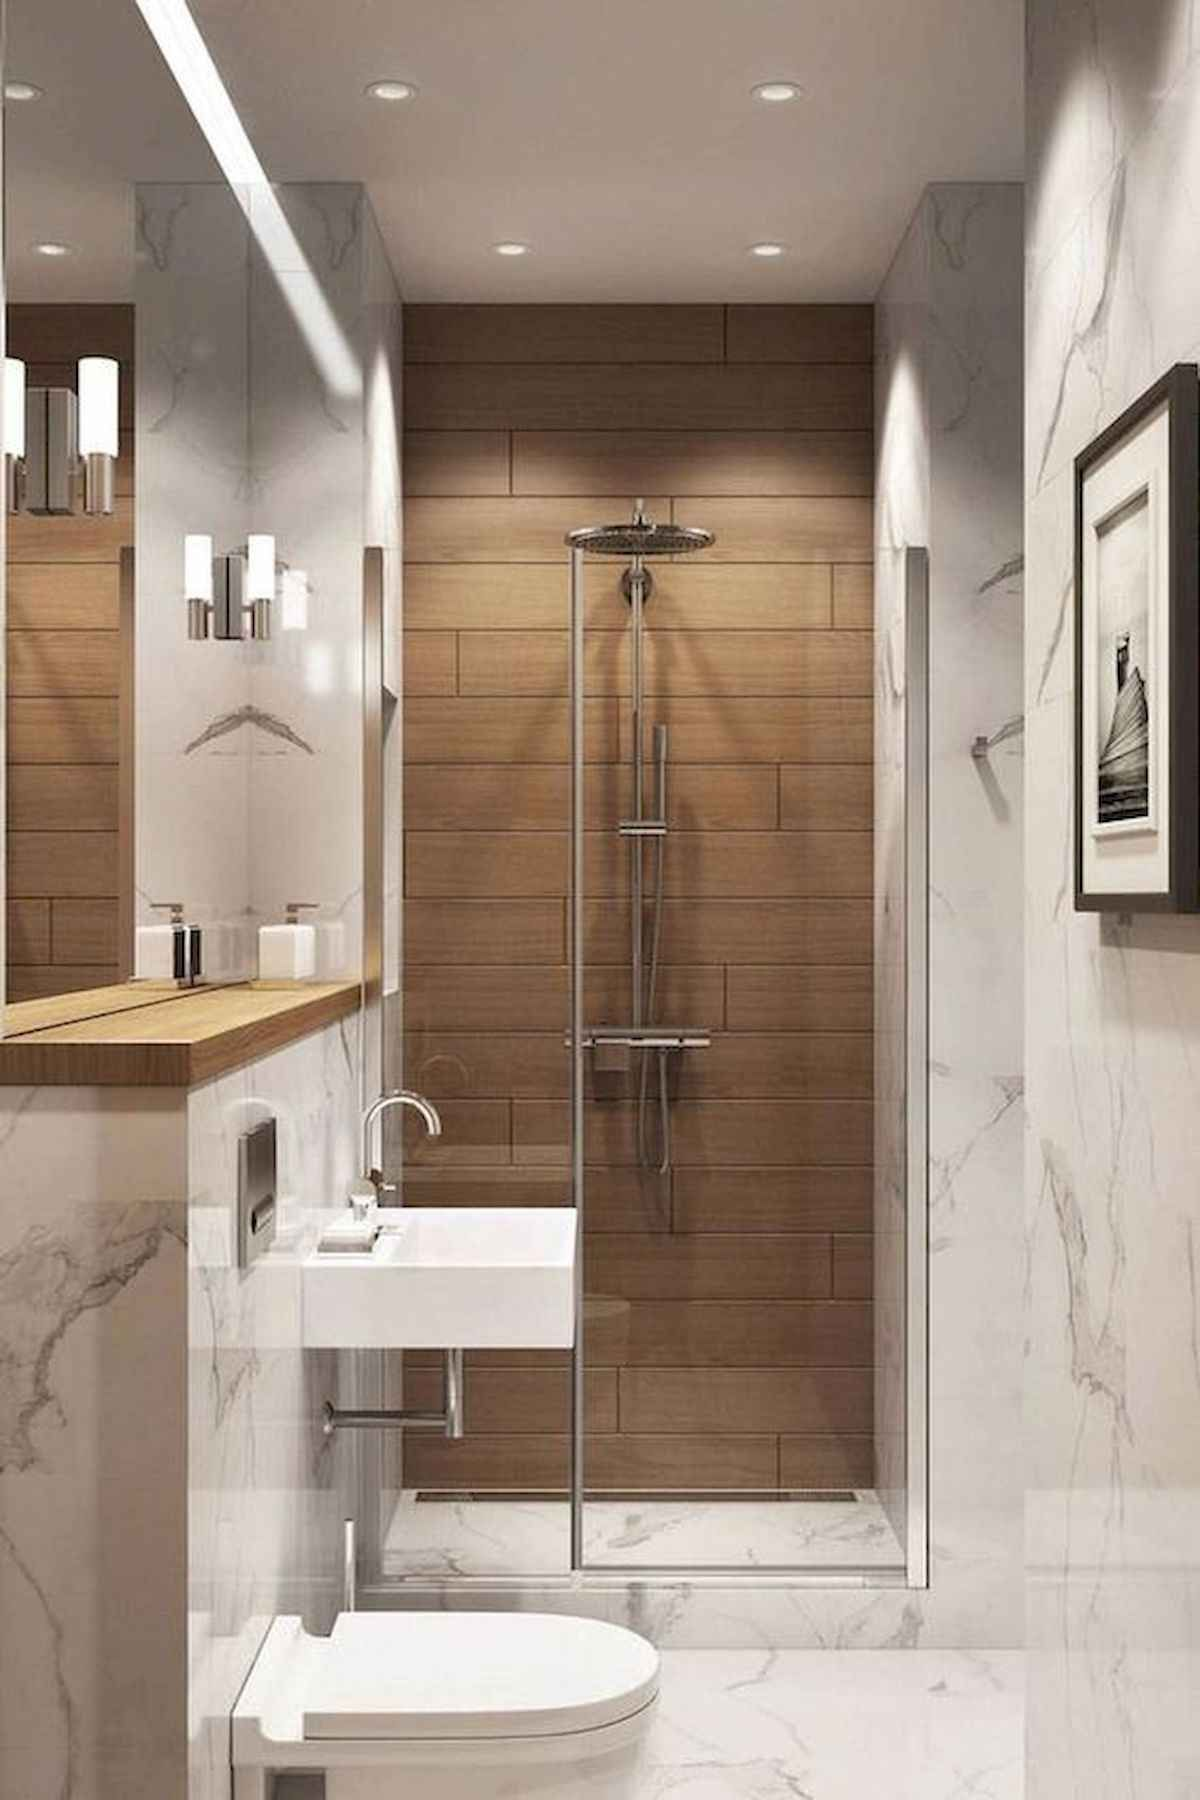 50 Stunning Small Bathroom Makeover Ideas 4 In 2020 Small